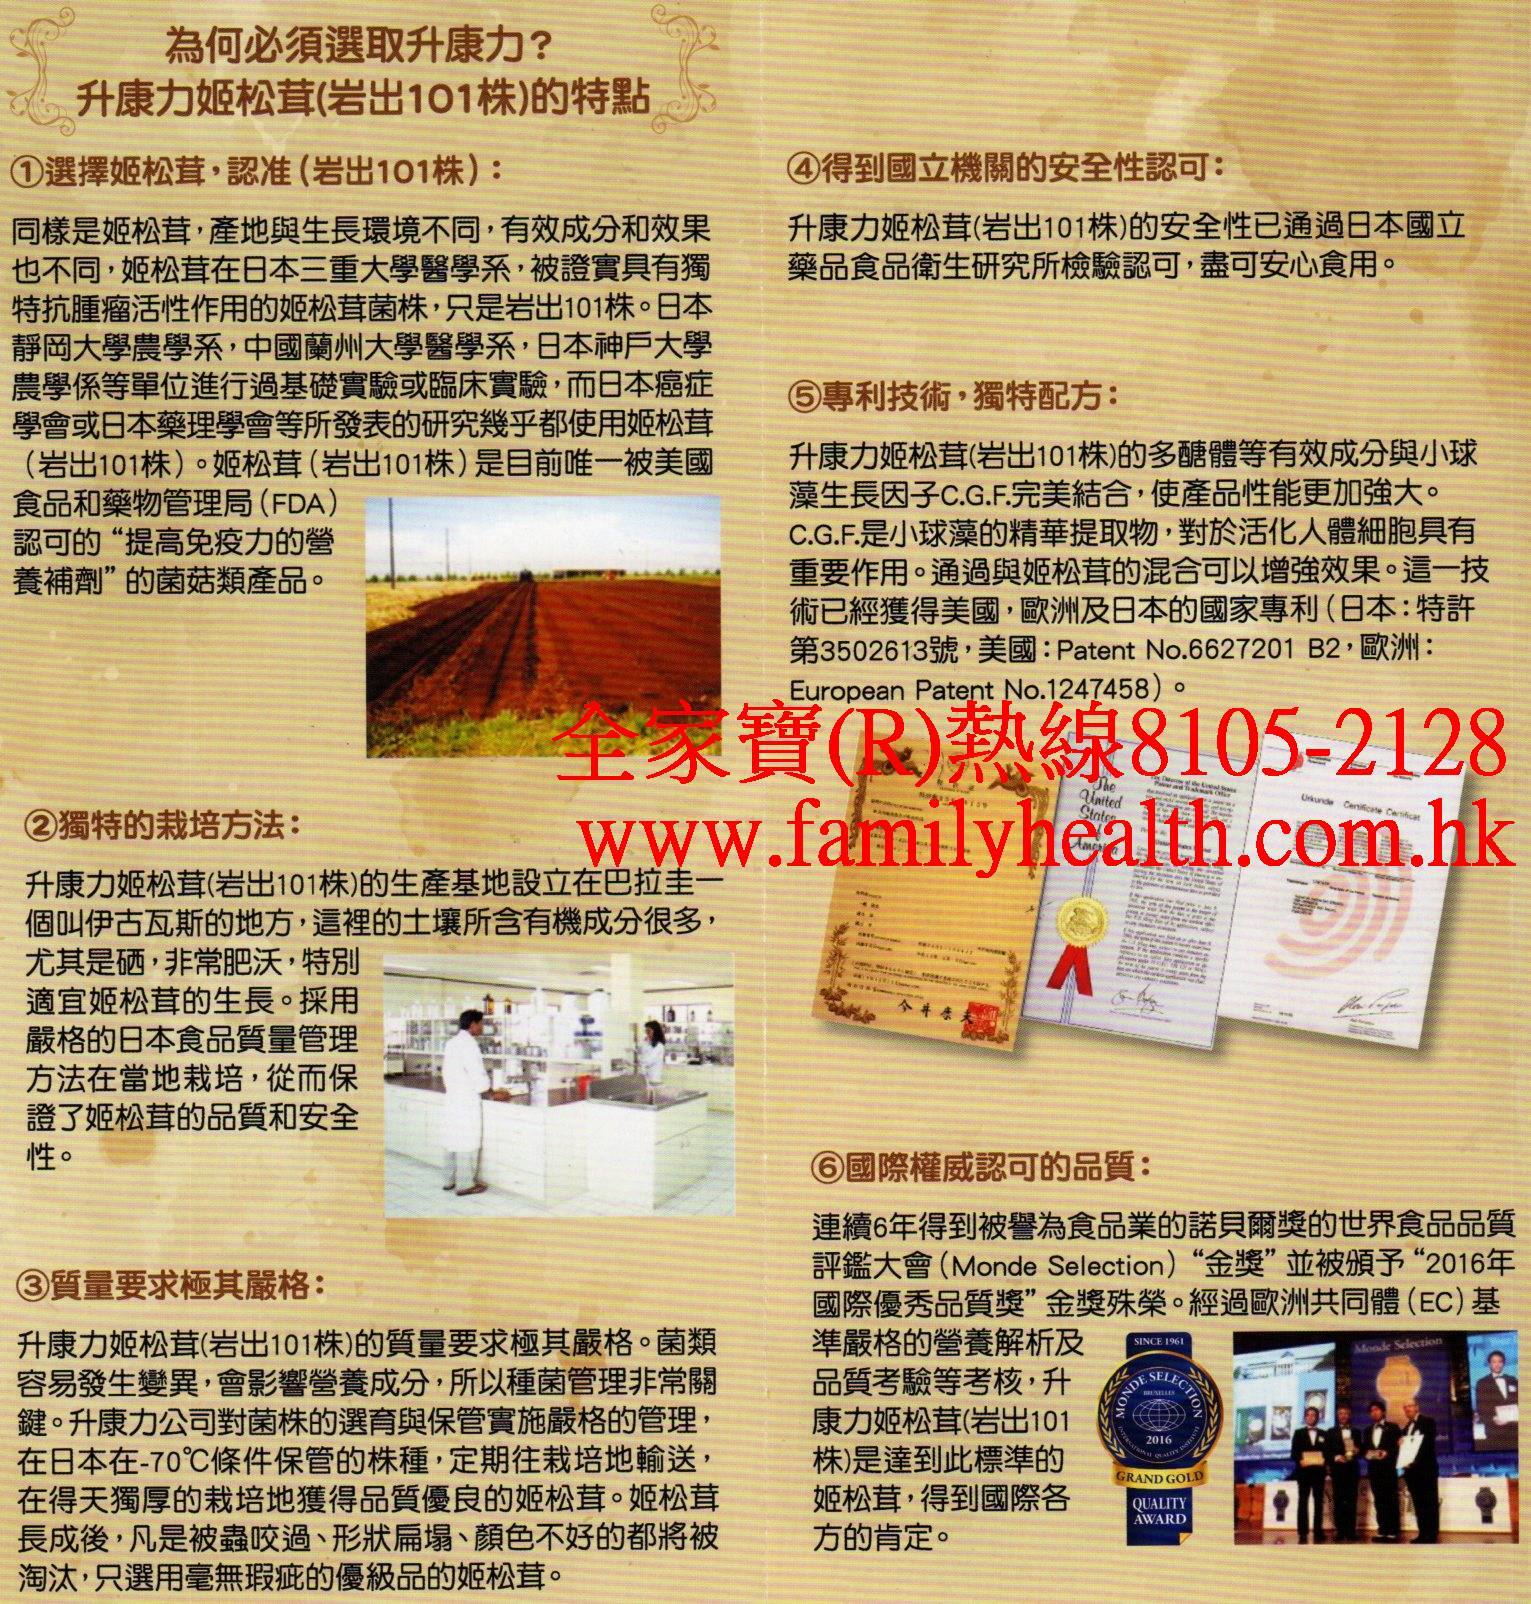 http://www.familyhealth.com.hk/files/full/1037_1.jpg